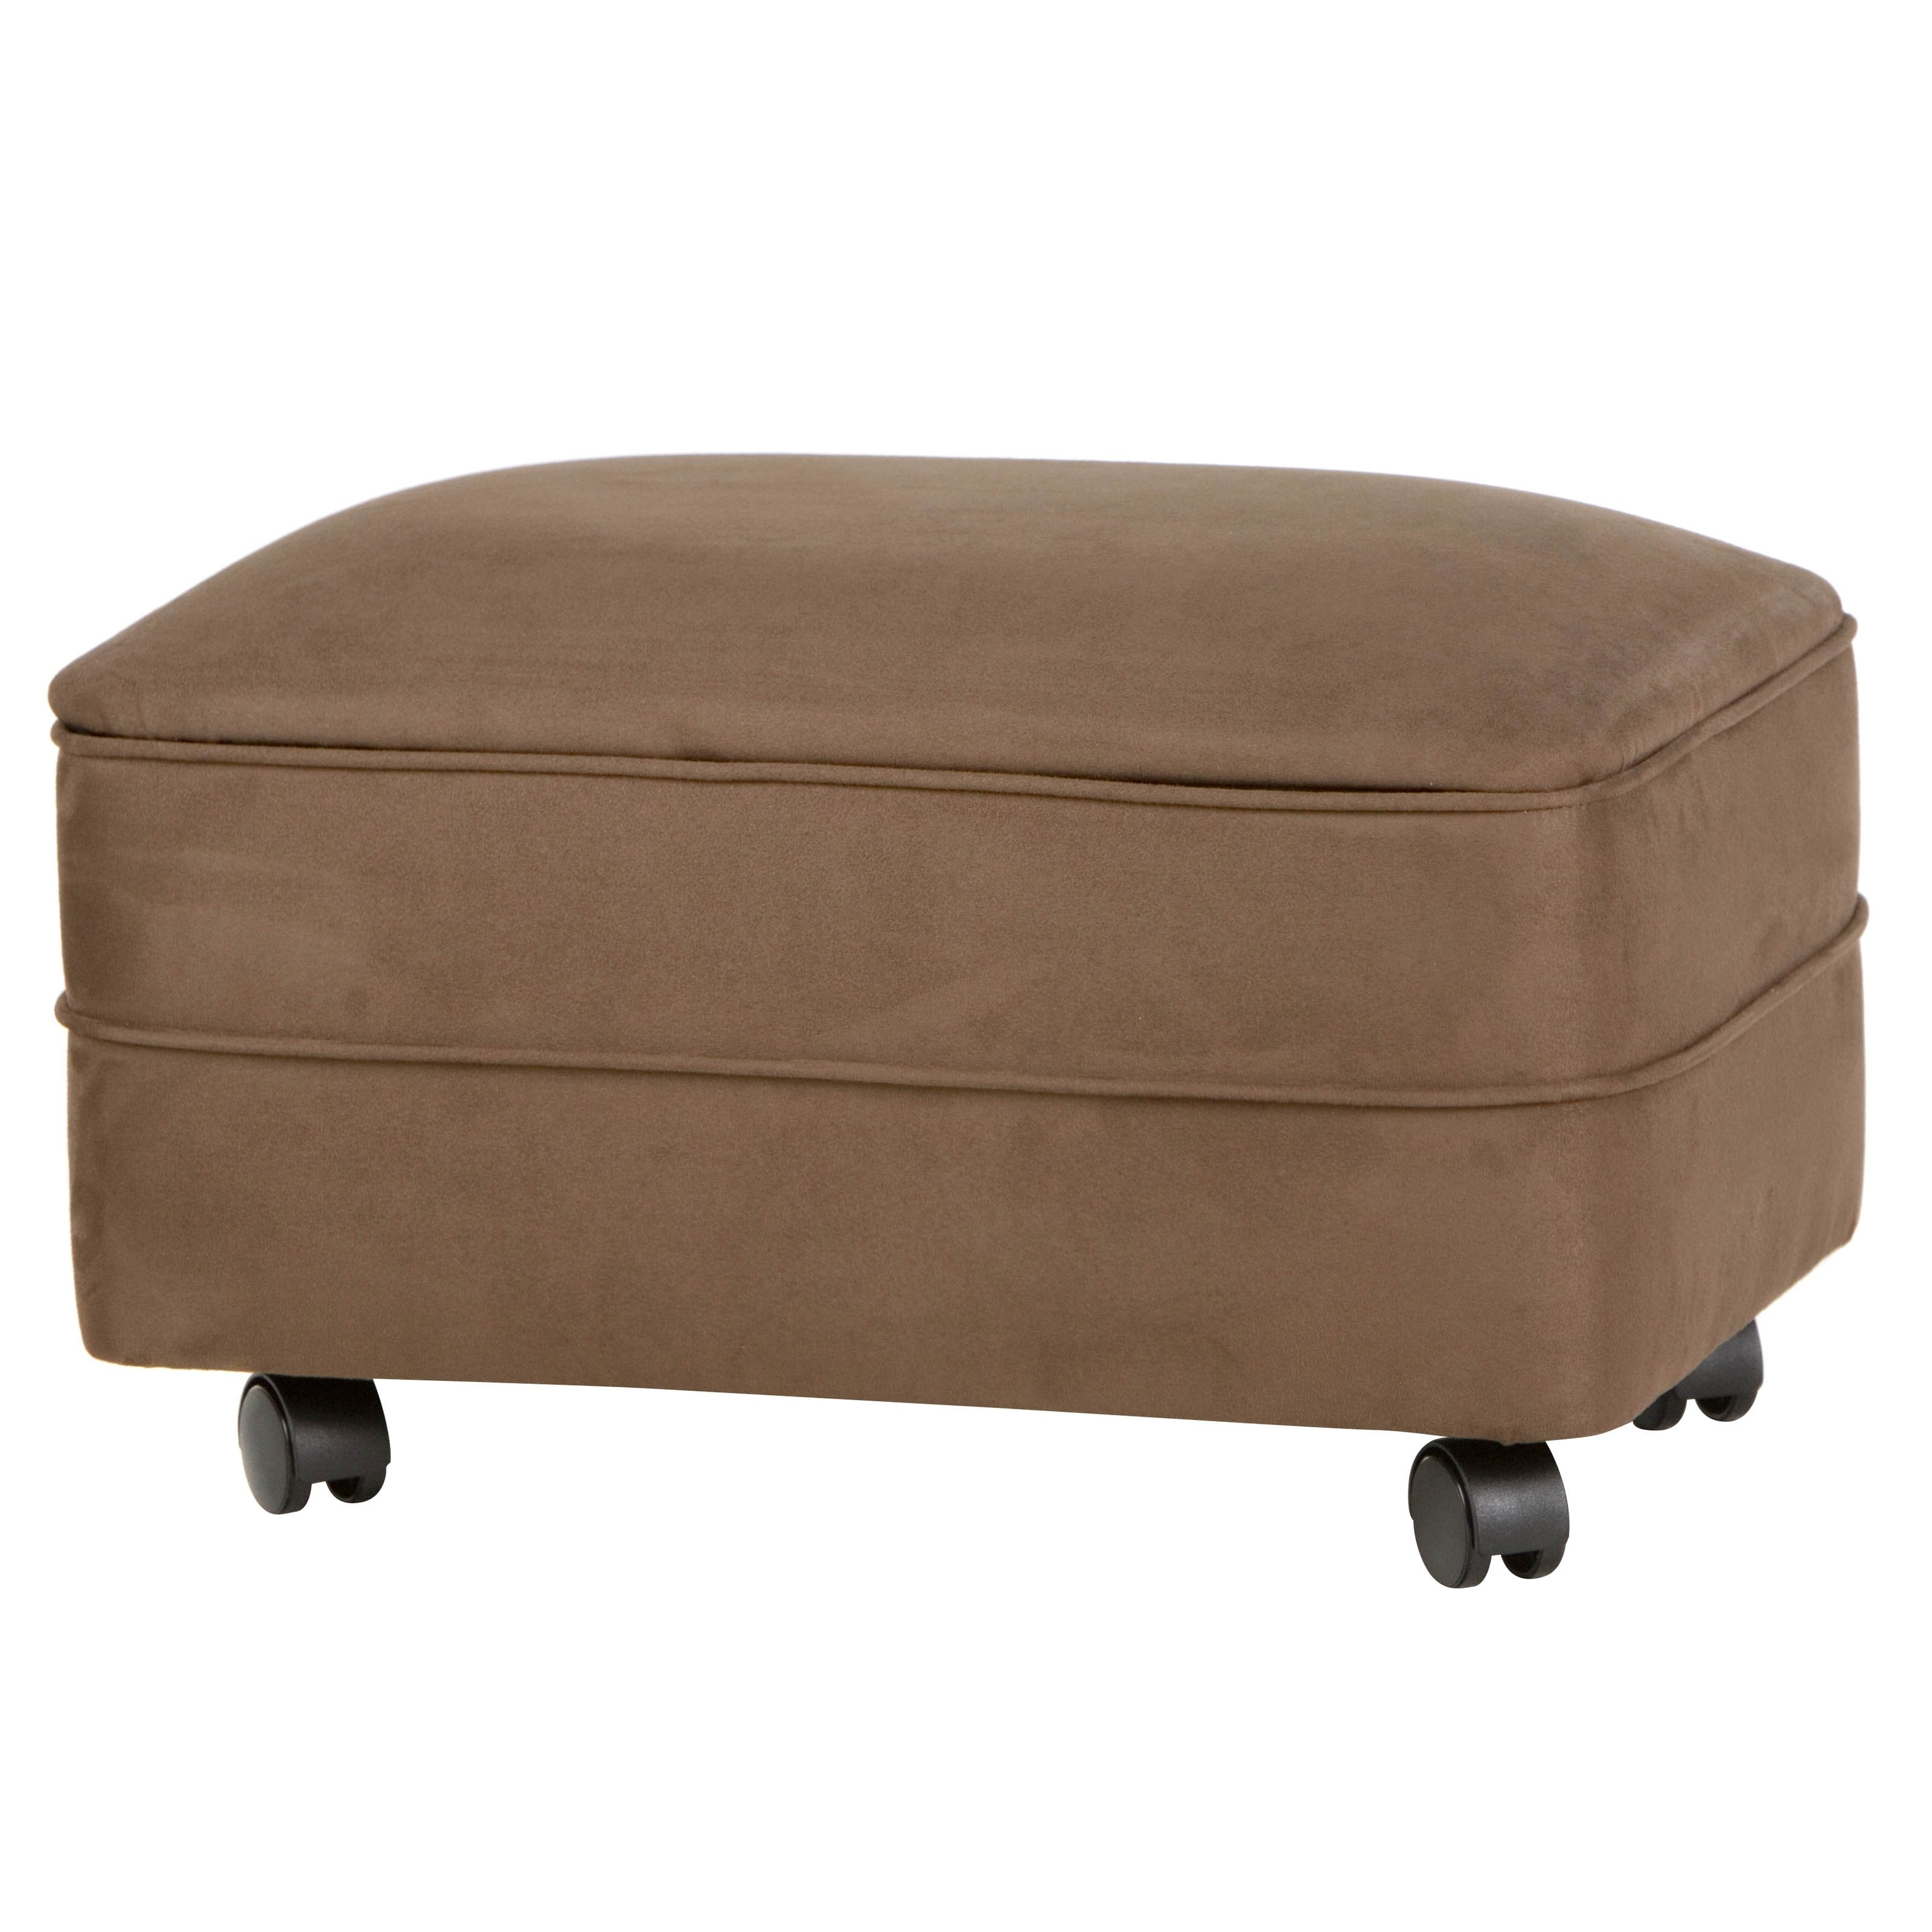 2018 Ottomans With Wheels In Microfiber Storage Ottoman, Footstools And Ottomans With Wheels (View 1 of 20)